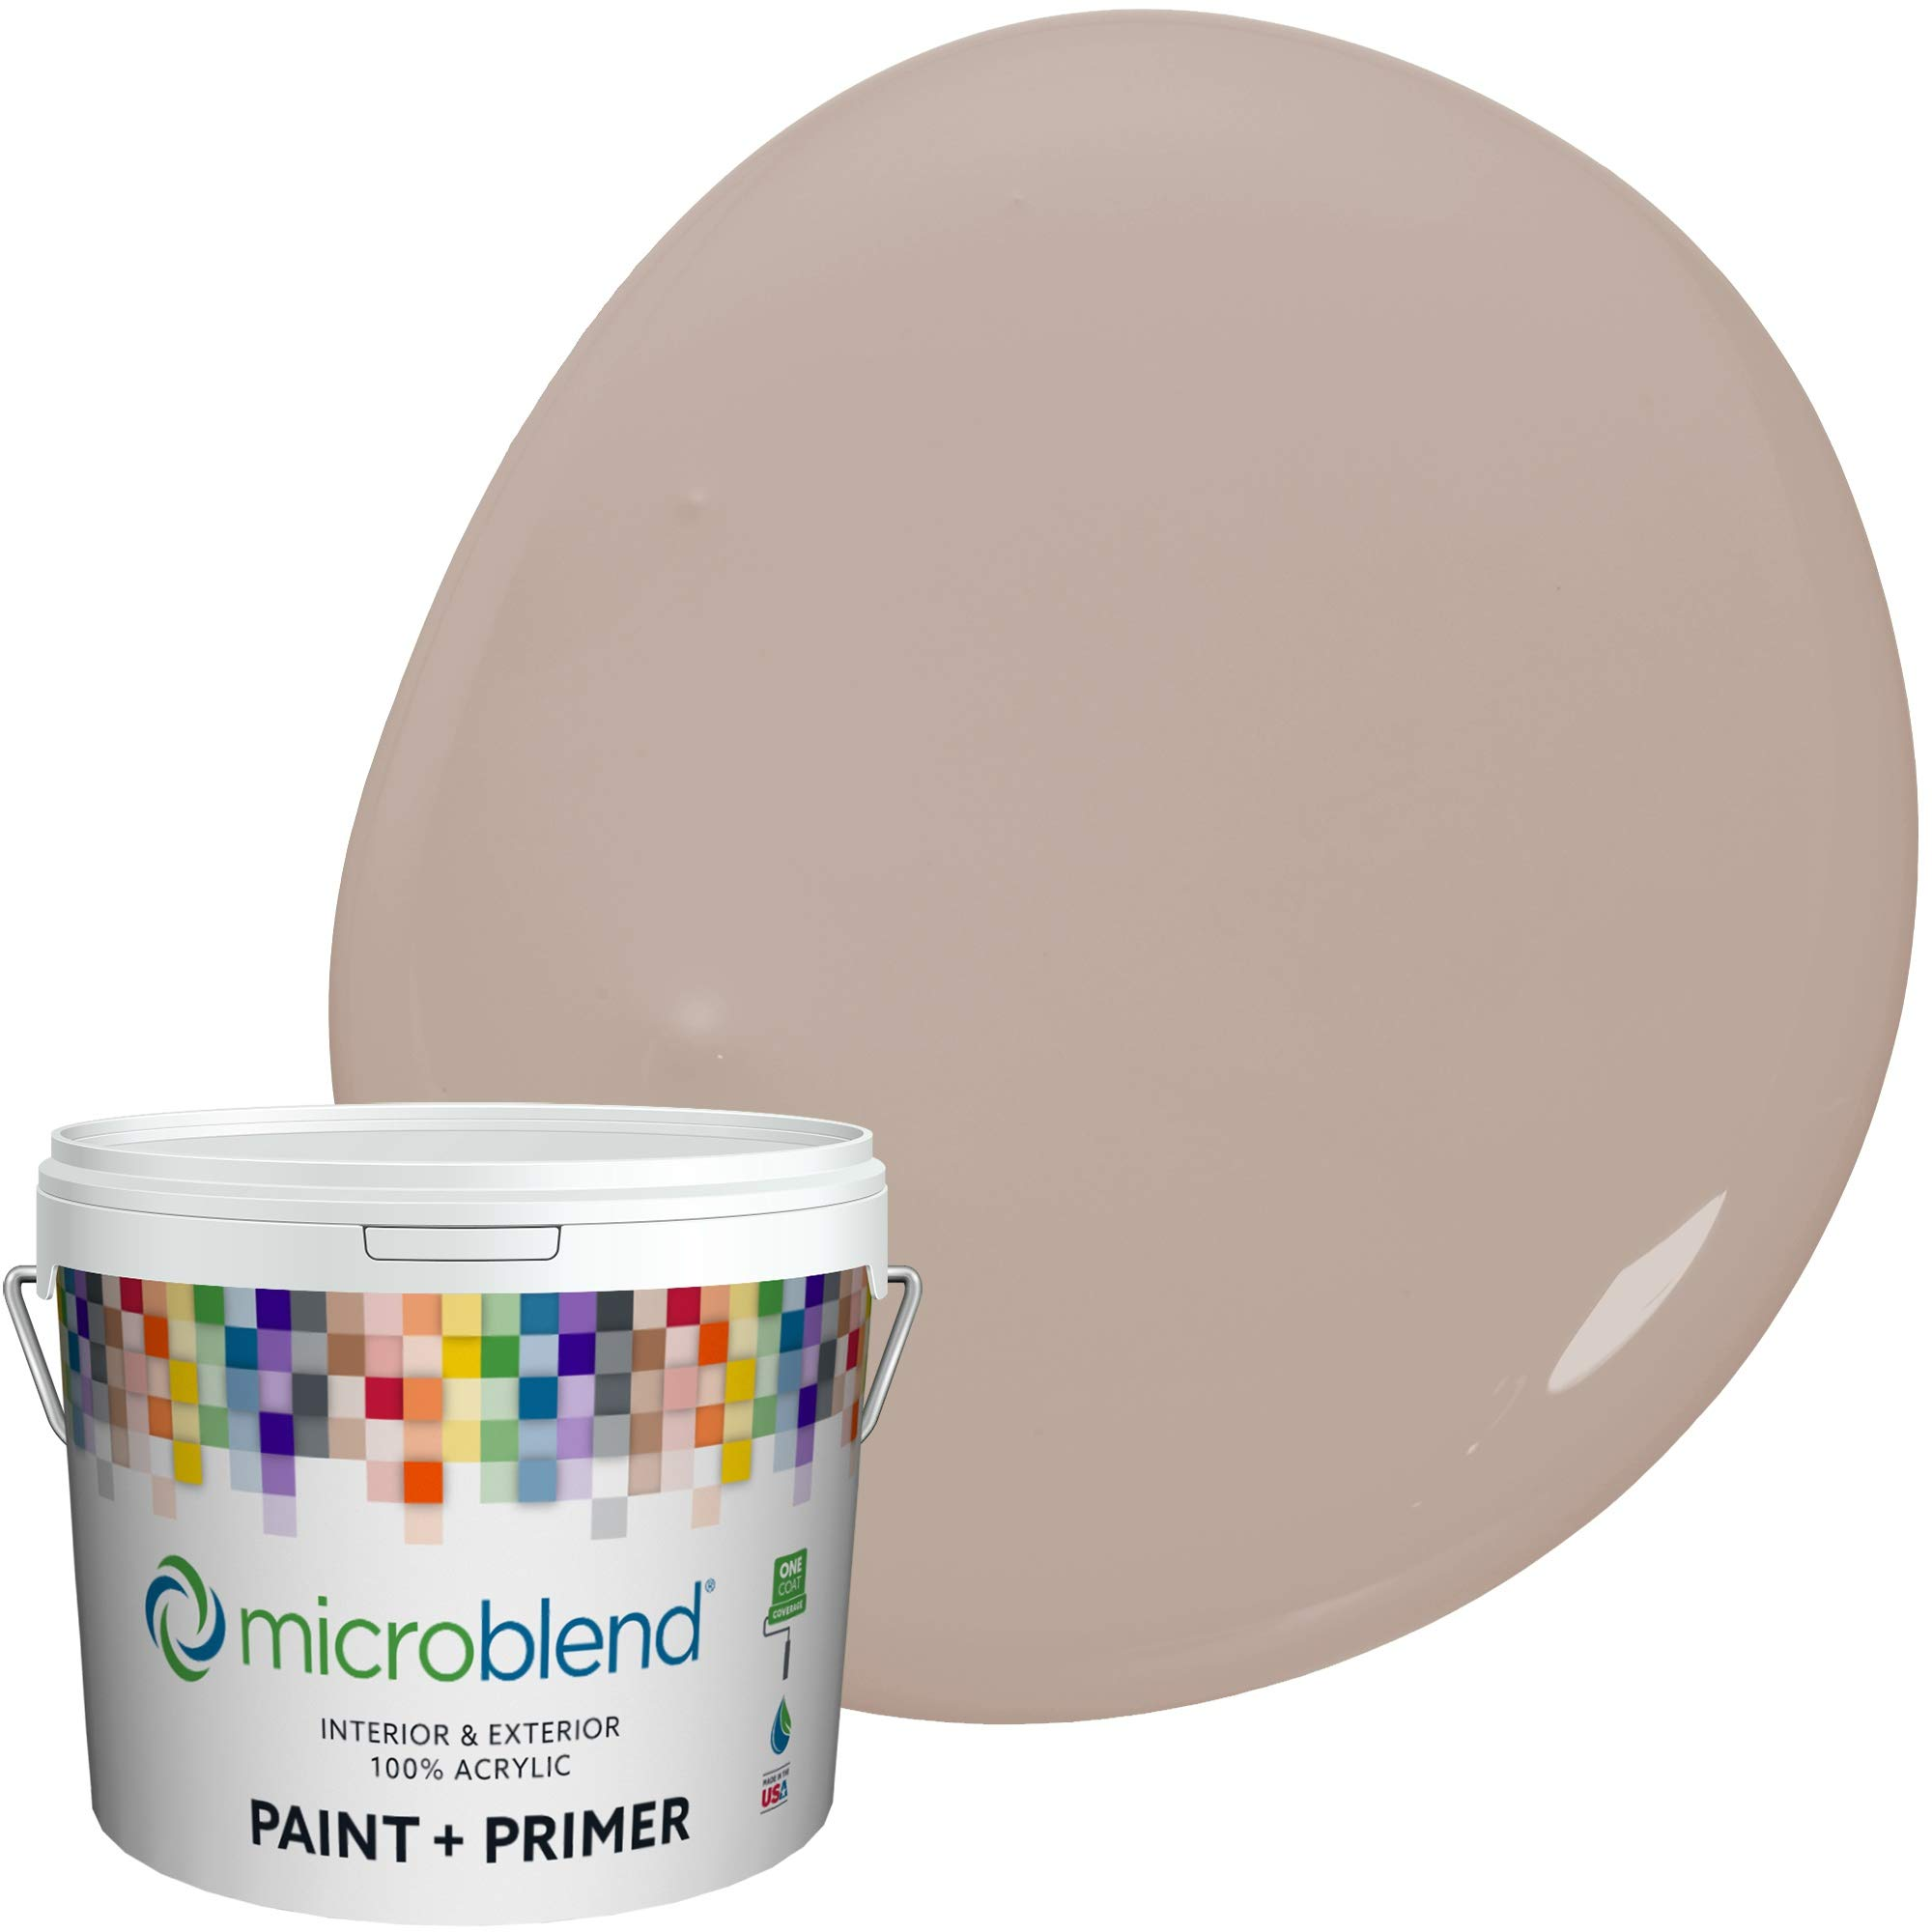 Microblend Interior Paint + Primer, Bird's Nest, Eggshell Sheen, 1 Gallon, Custom Made, Premium Quality One Coat Hide & Washable Paint (73221-2-M1855B3(C))